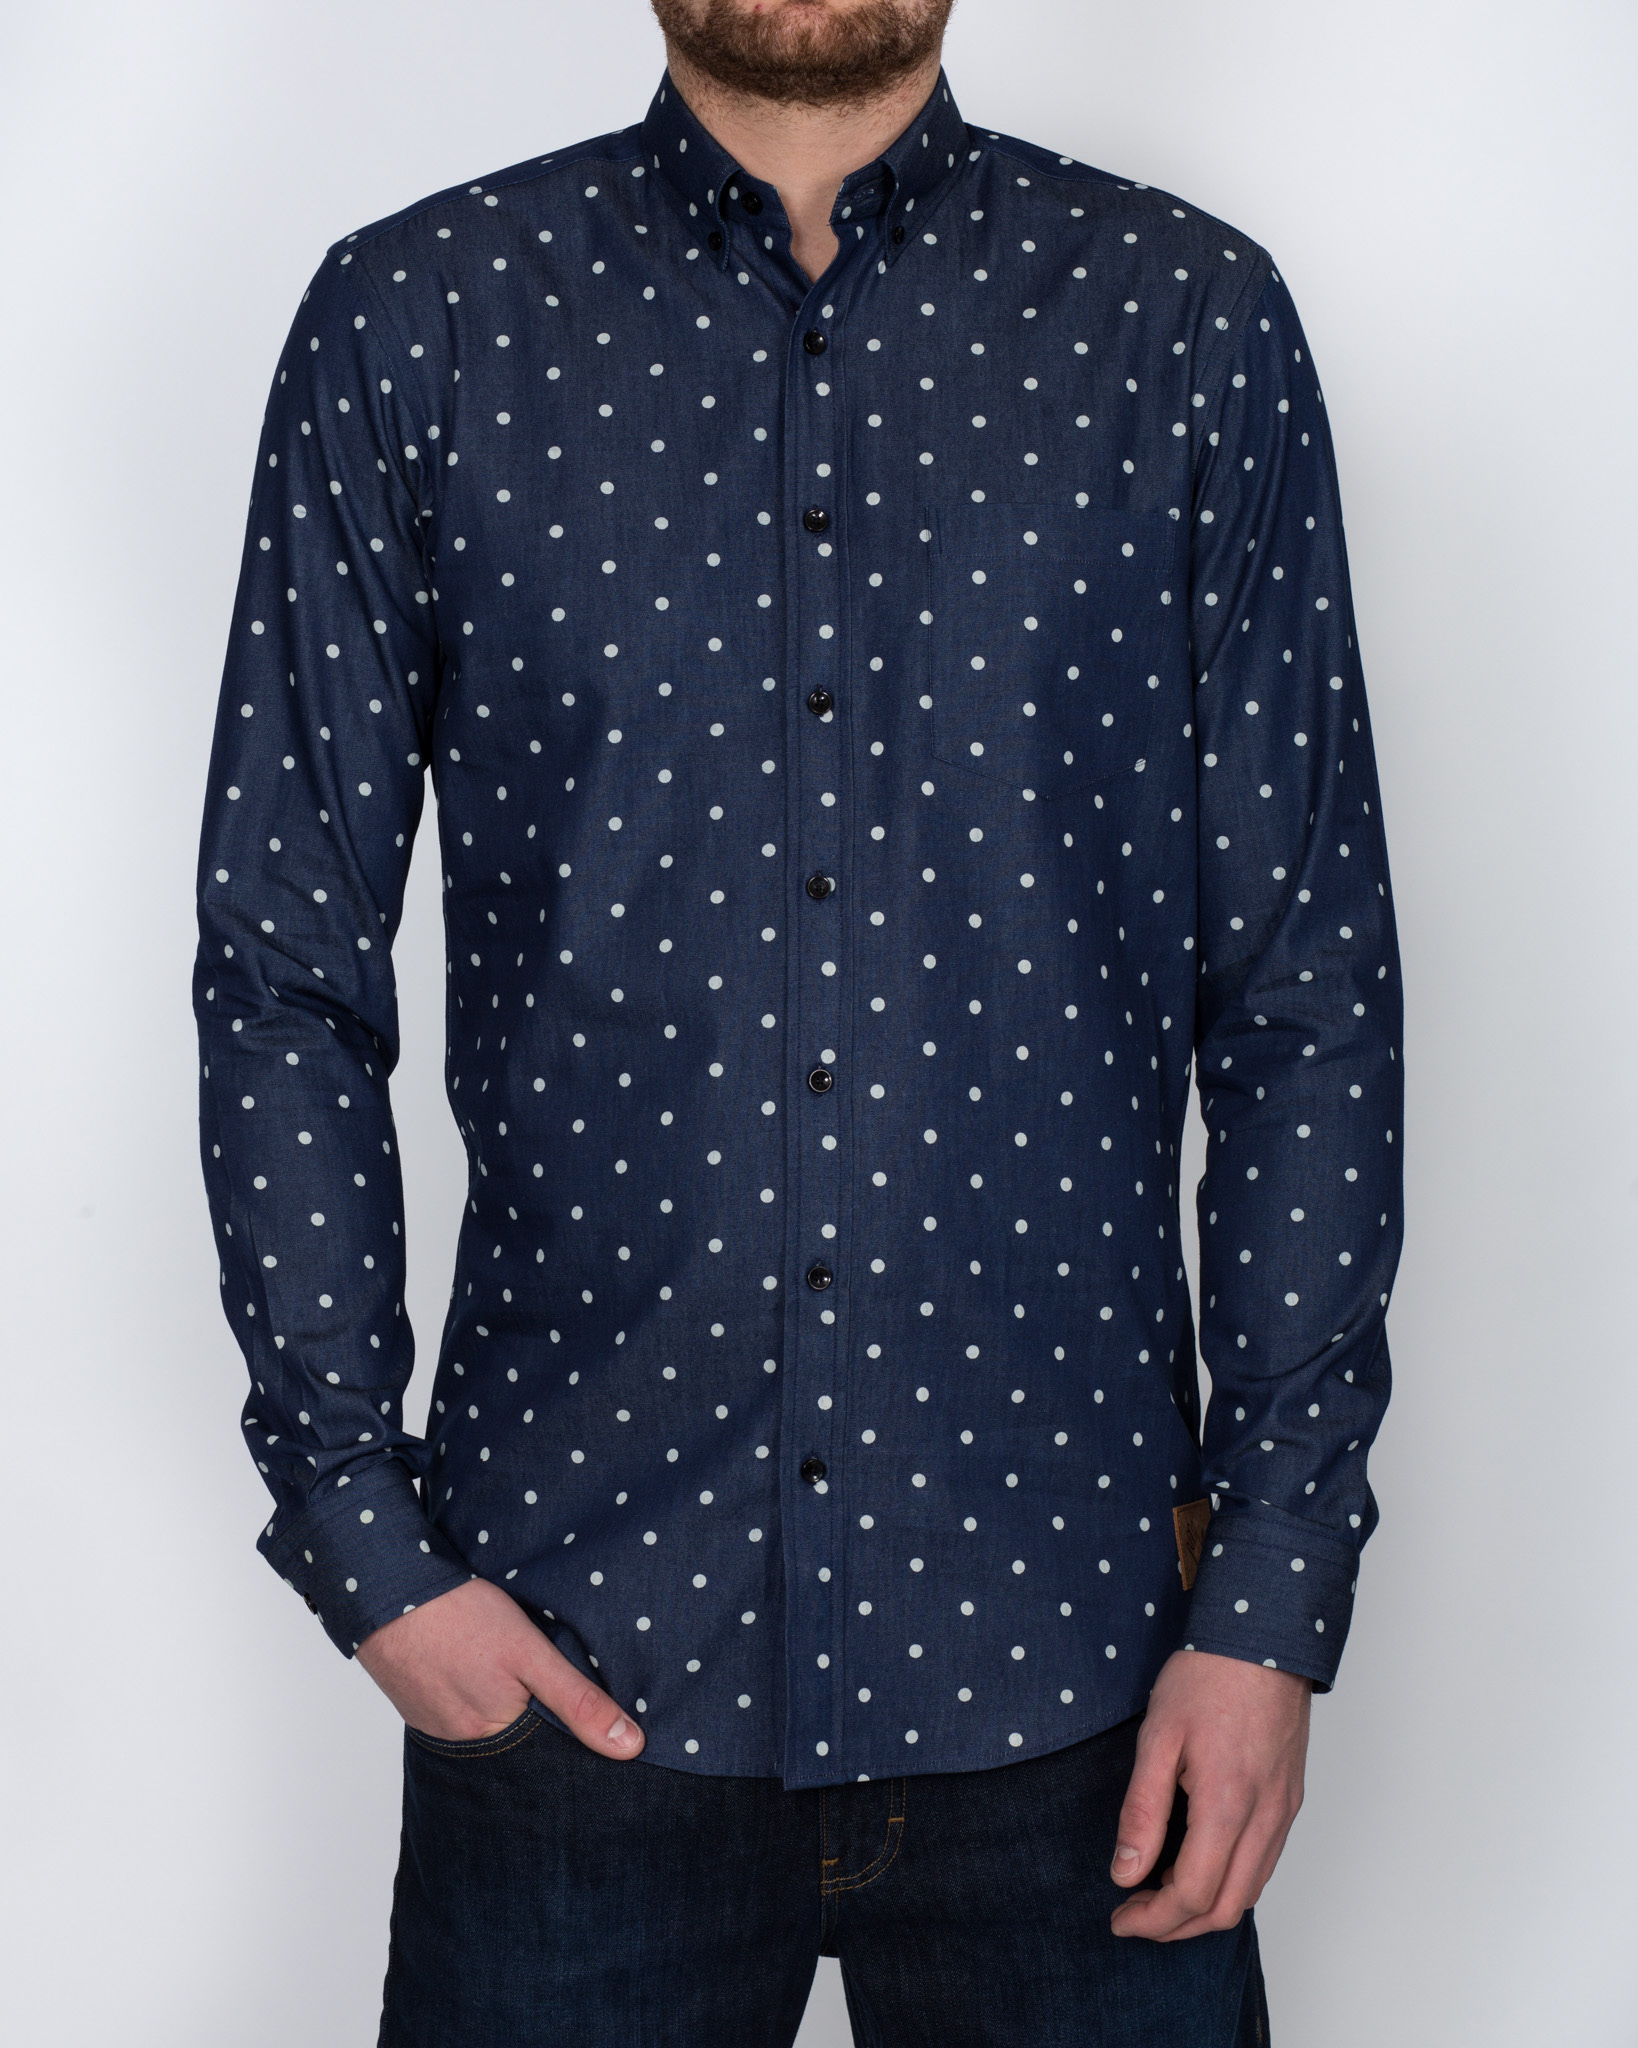 So Long Sven Tall Oxford Shirt (denim and dots)